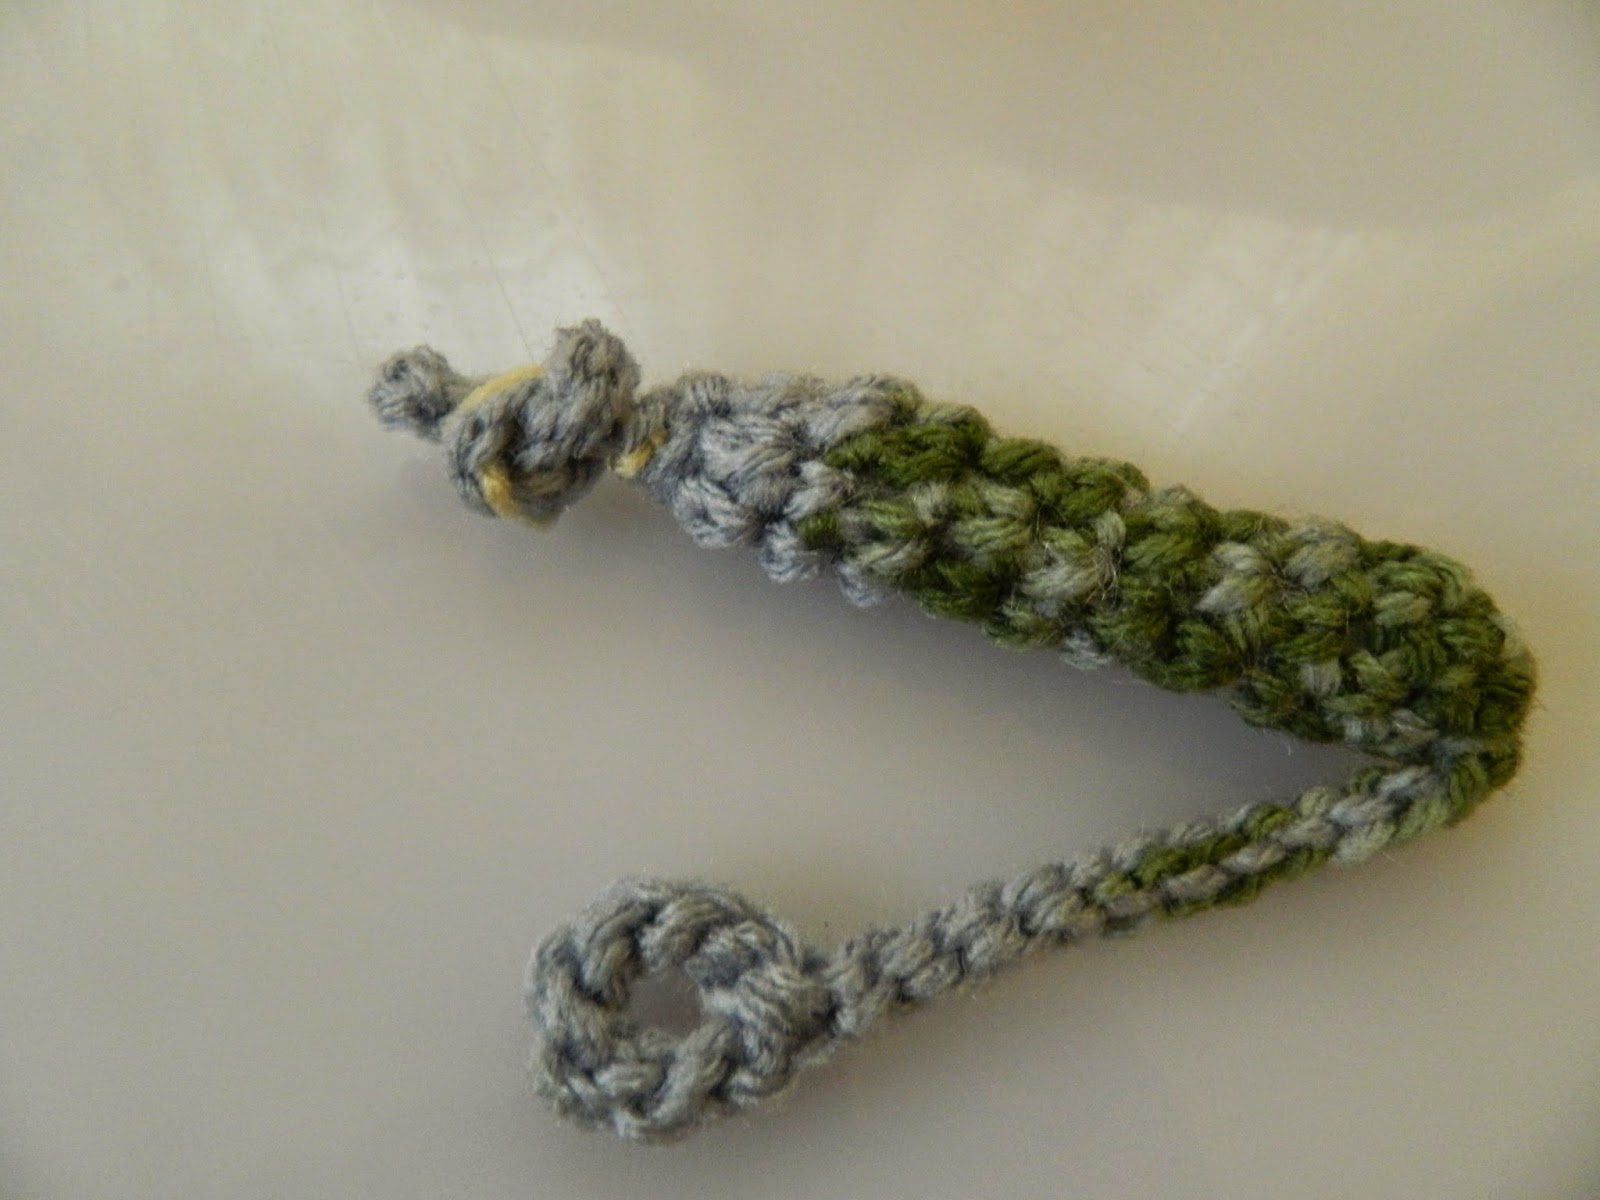 ... of the Great Smoky Mountains: Hair Curlers to Crochet, Free Pattern